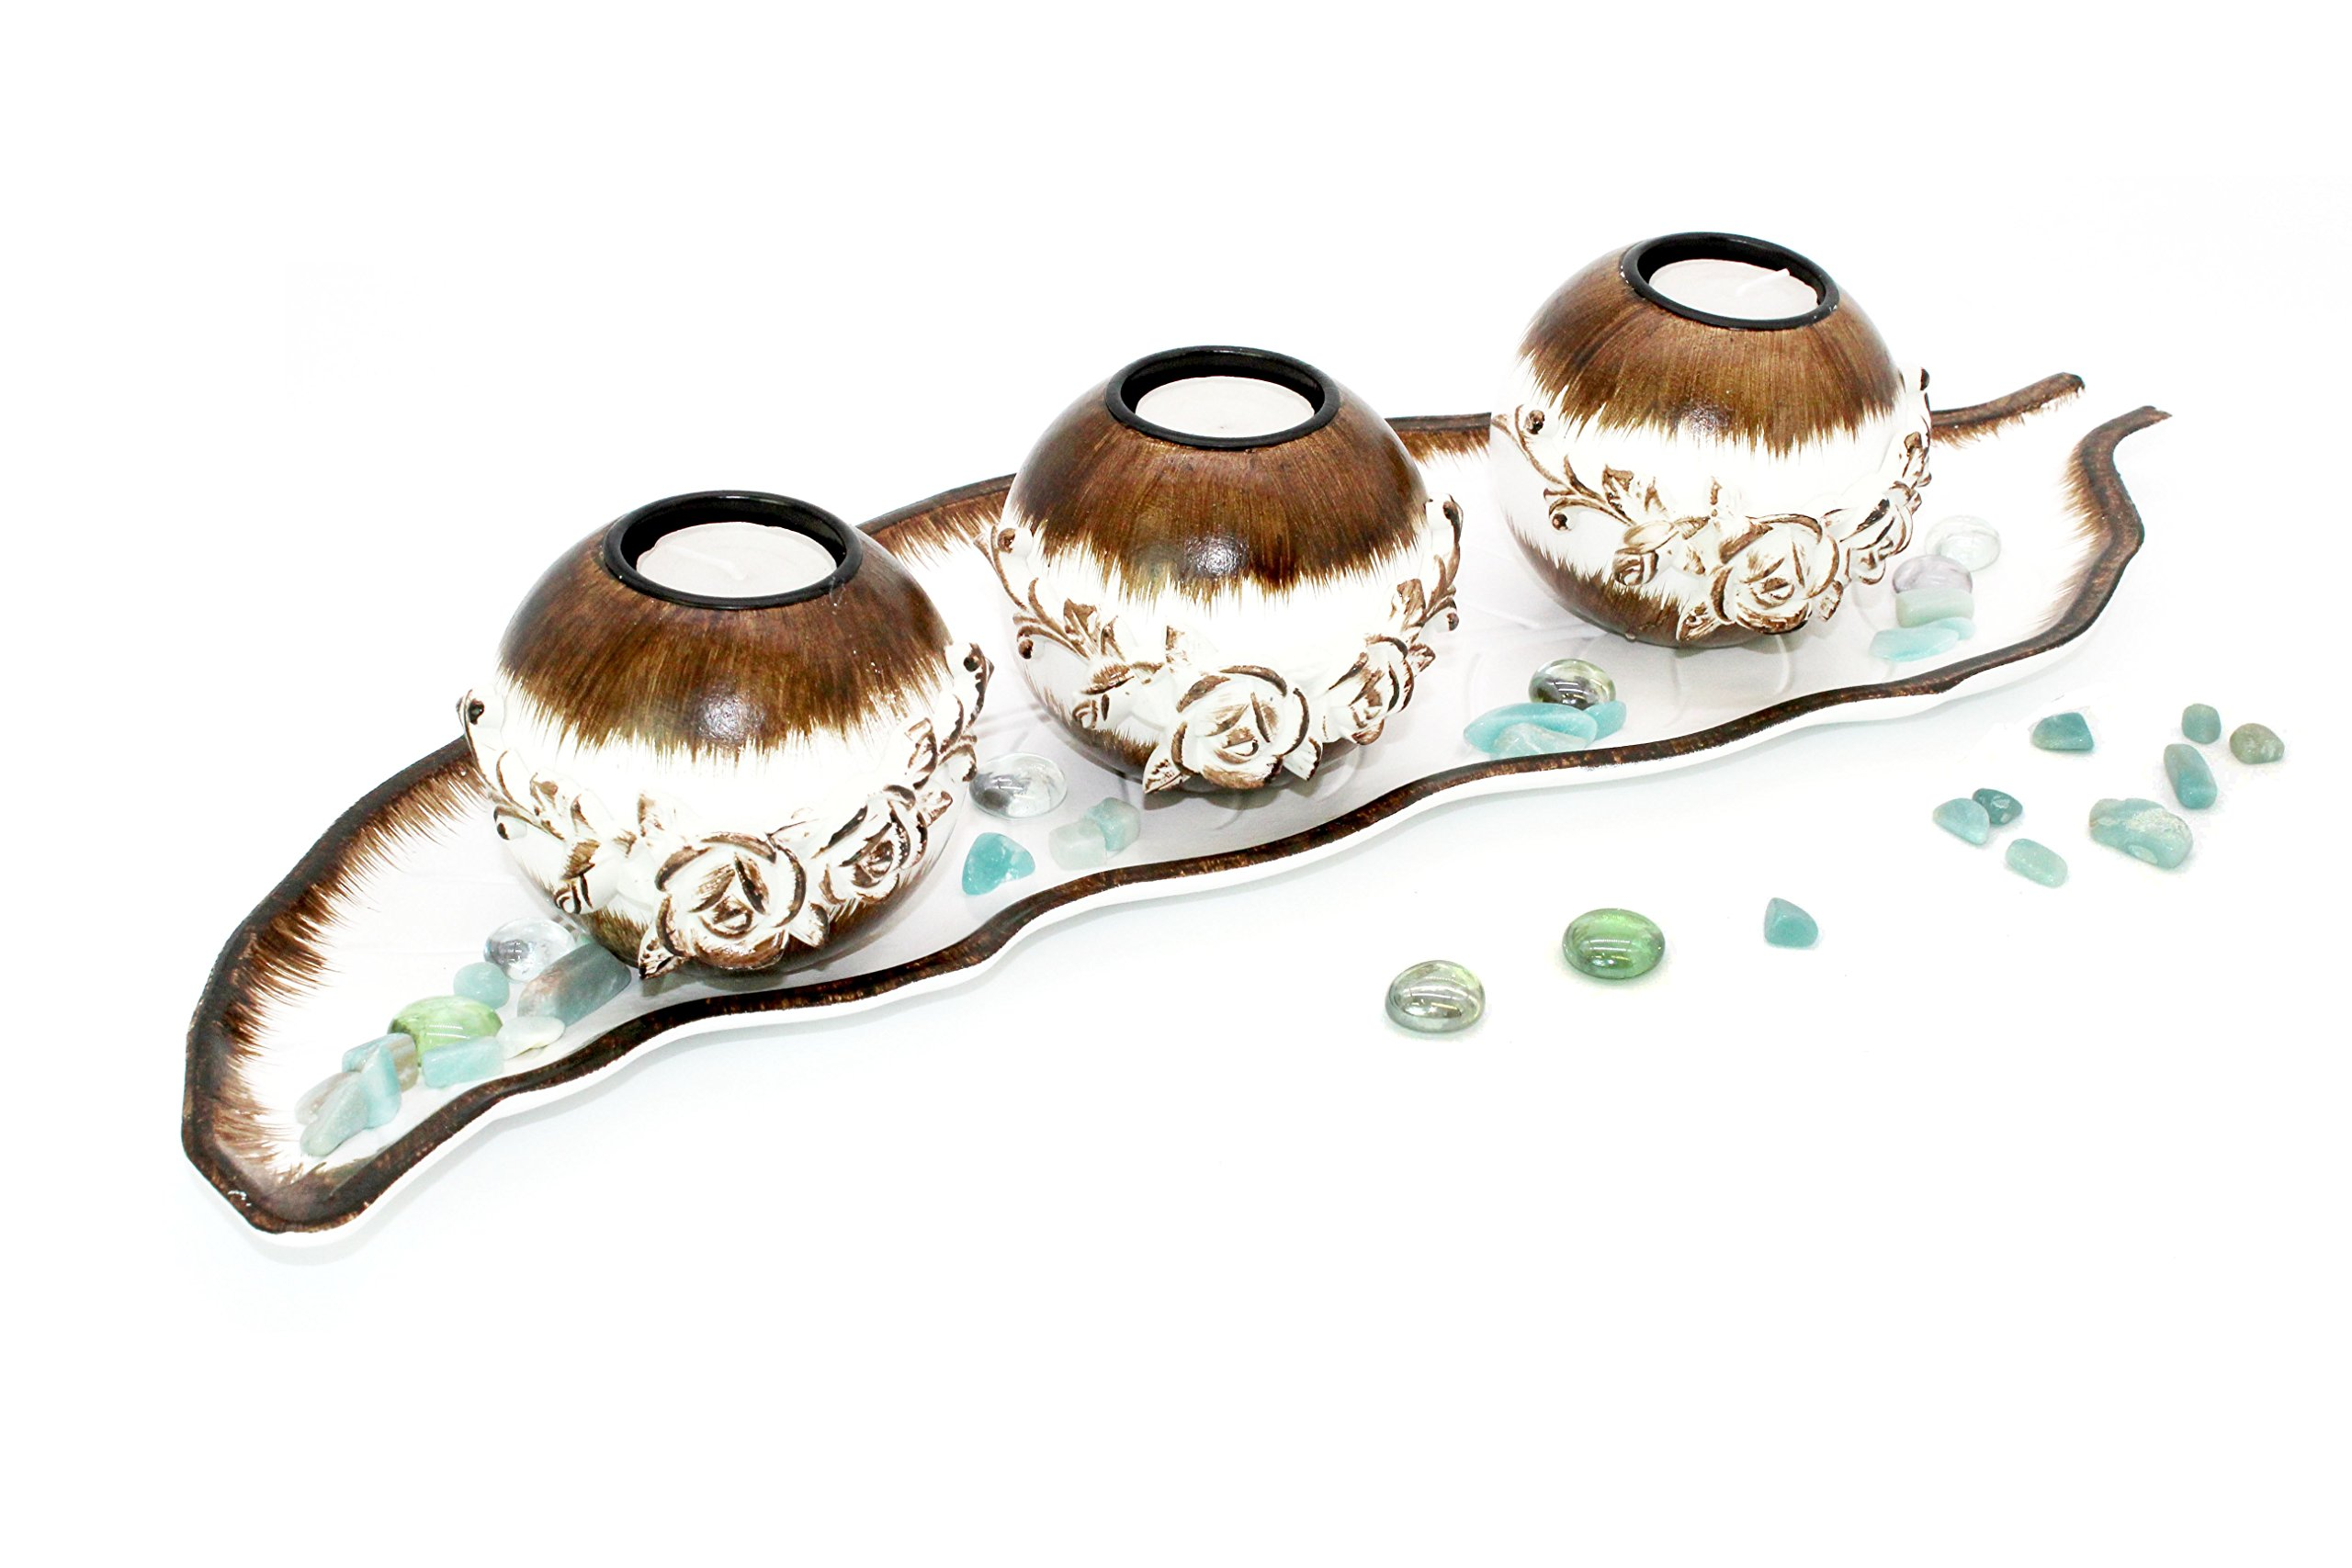 Rustic Table Centerpiece Set: Decorative 3 Candle Holder 20'' Inch Wood Kitchen Leaf Shaped Tray with Turquoise Rocks Coffe/Dining Room Decor